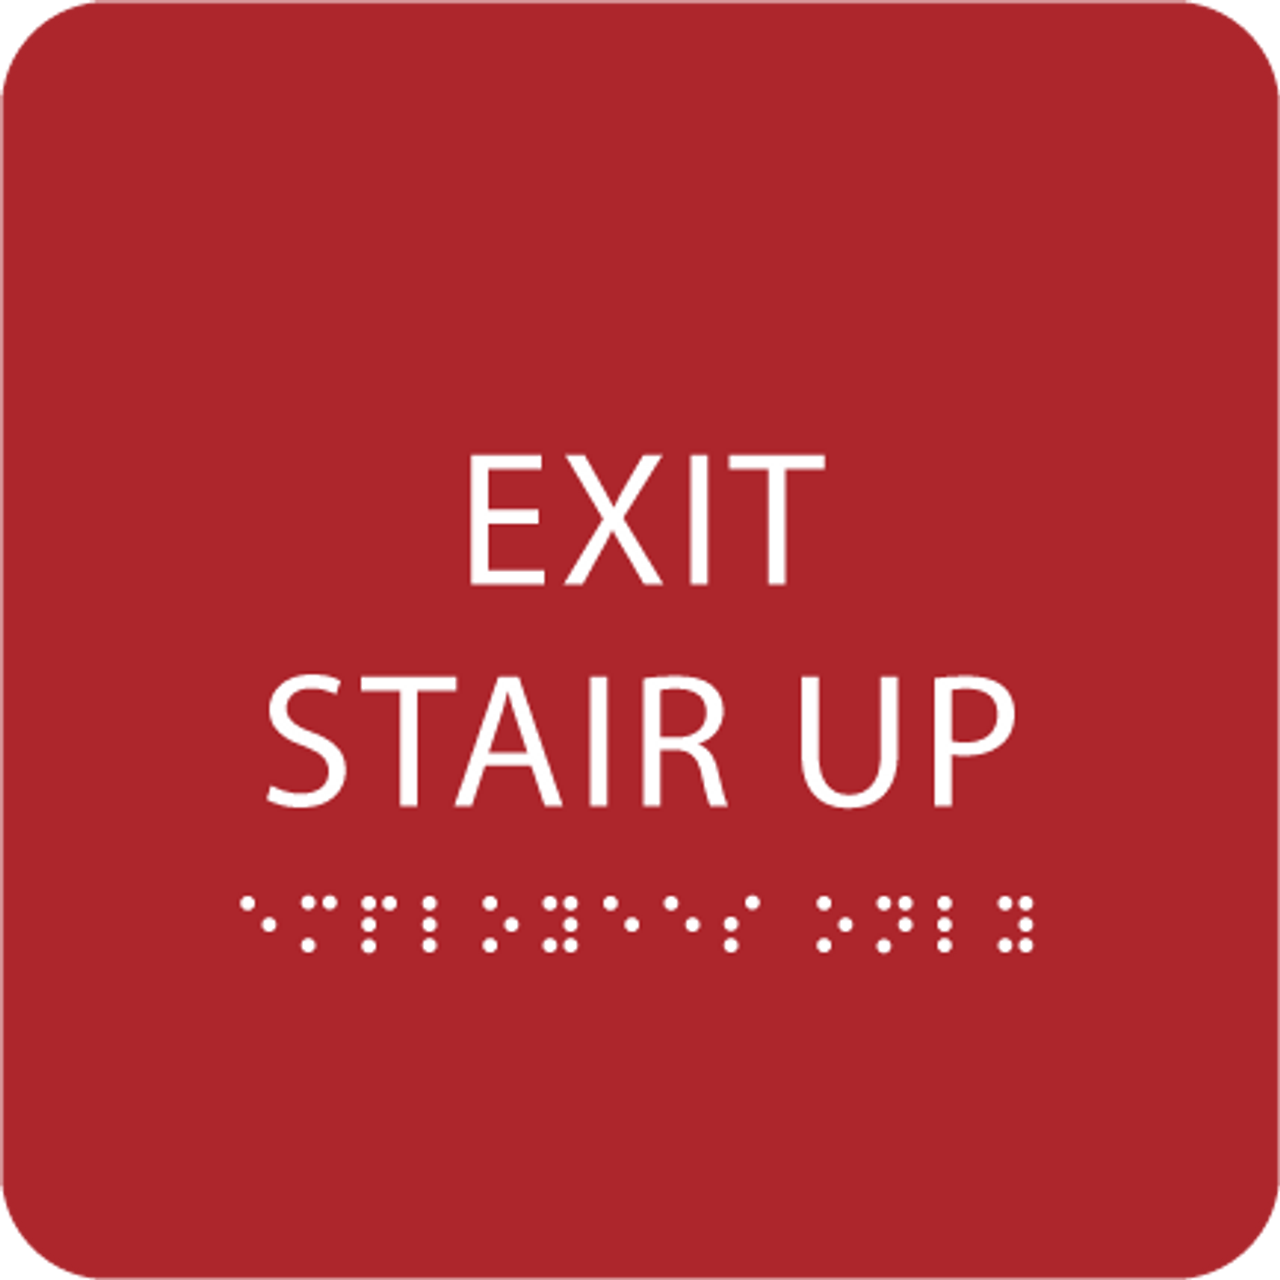 Red Exit Stair Up ADA Sign